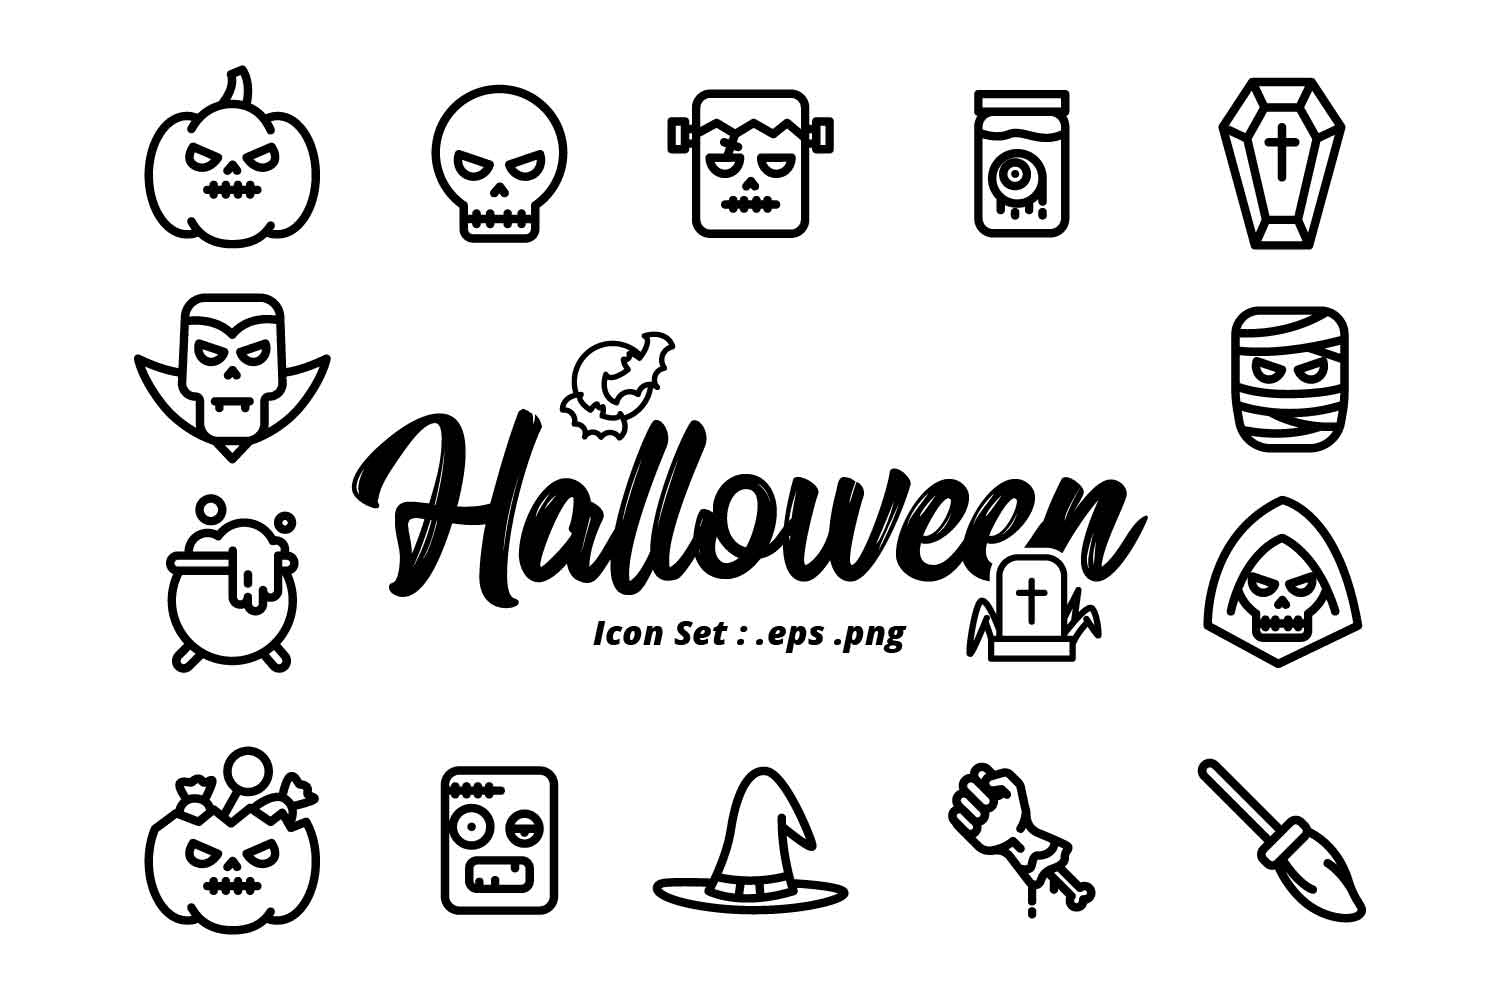 HALLOWEEN ICON SET example image 2